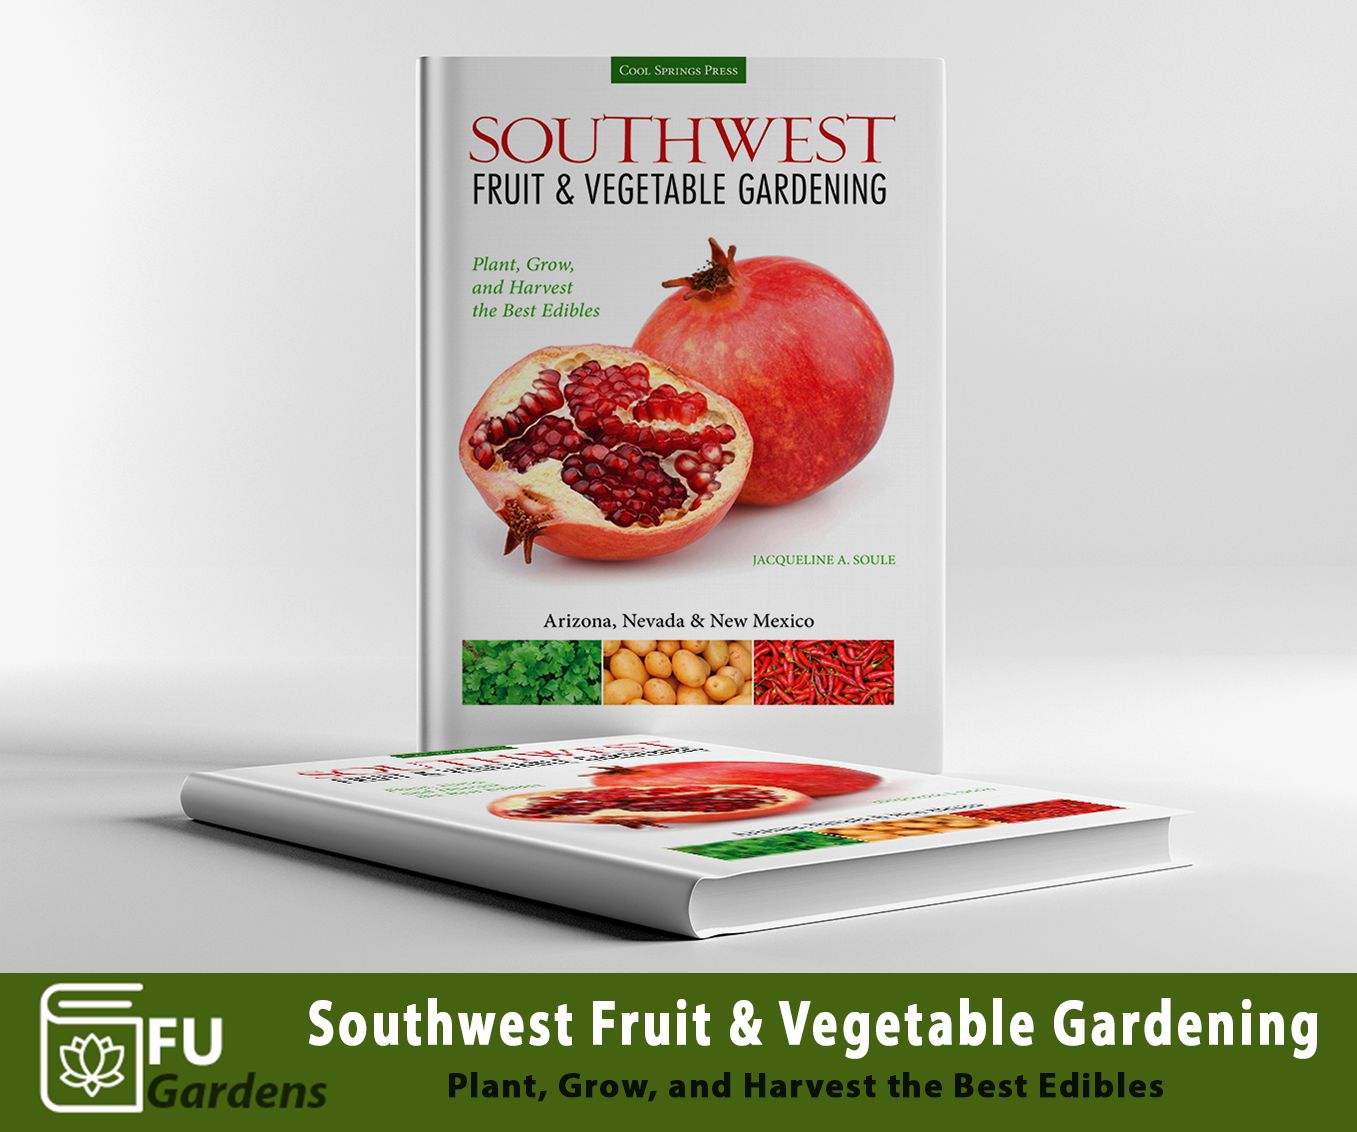 READ BOOK: Southwest Fruit & Vegetable Gardening: Plant, Grow, and Harvest the Best Edibles  By Jacqueline Soule